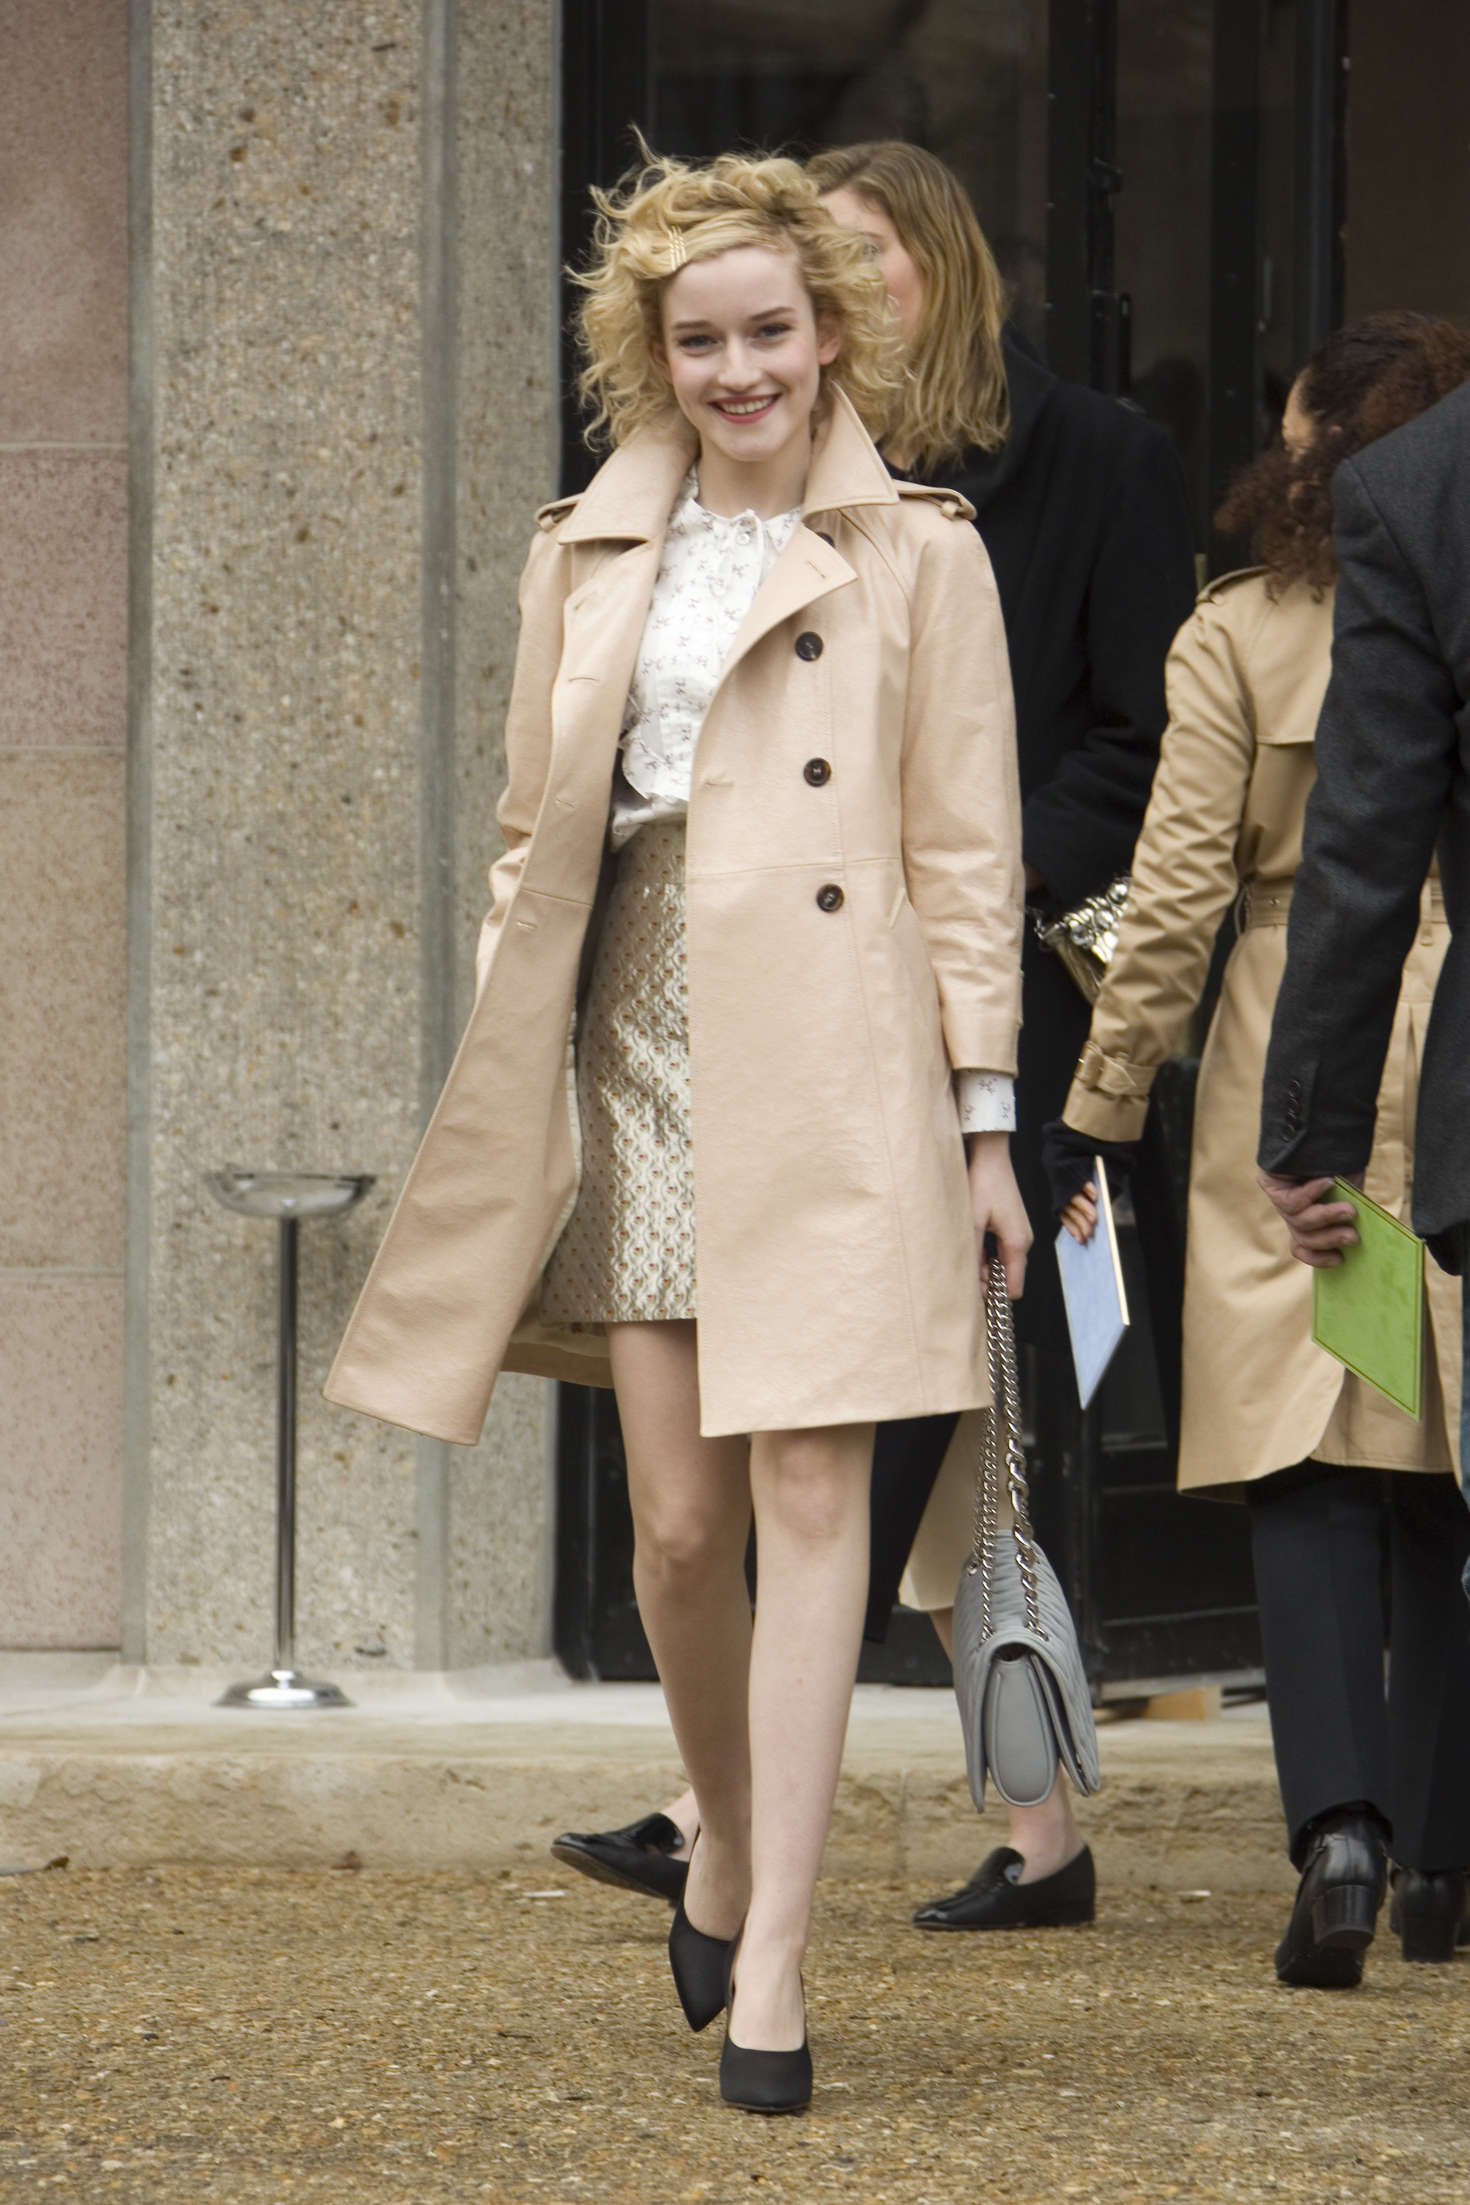 Julia Garner Arrives at Miu Miu Fashion Show in Paris